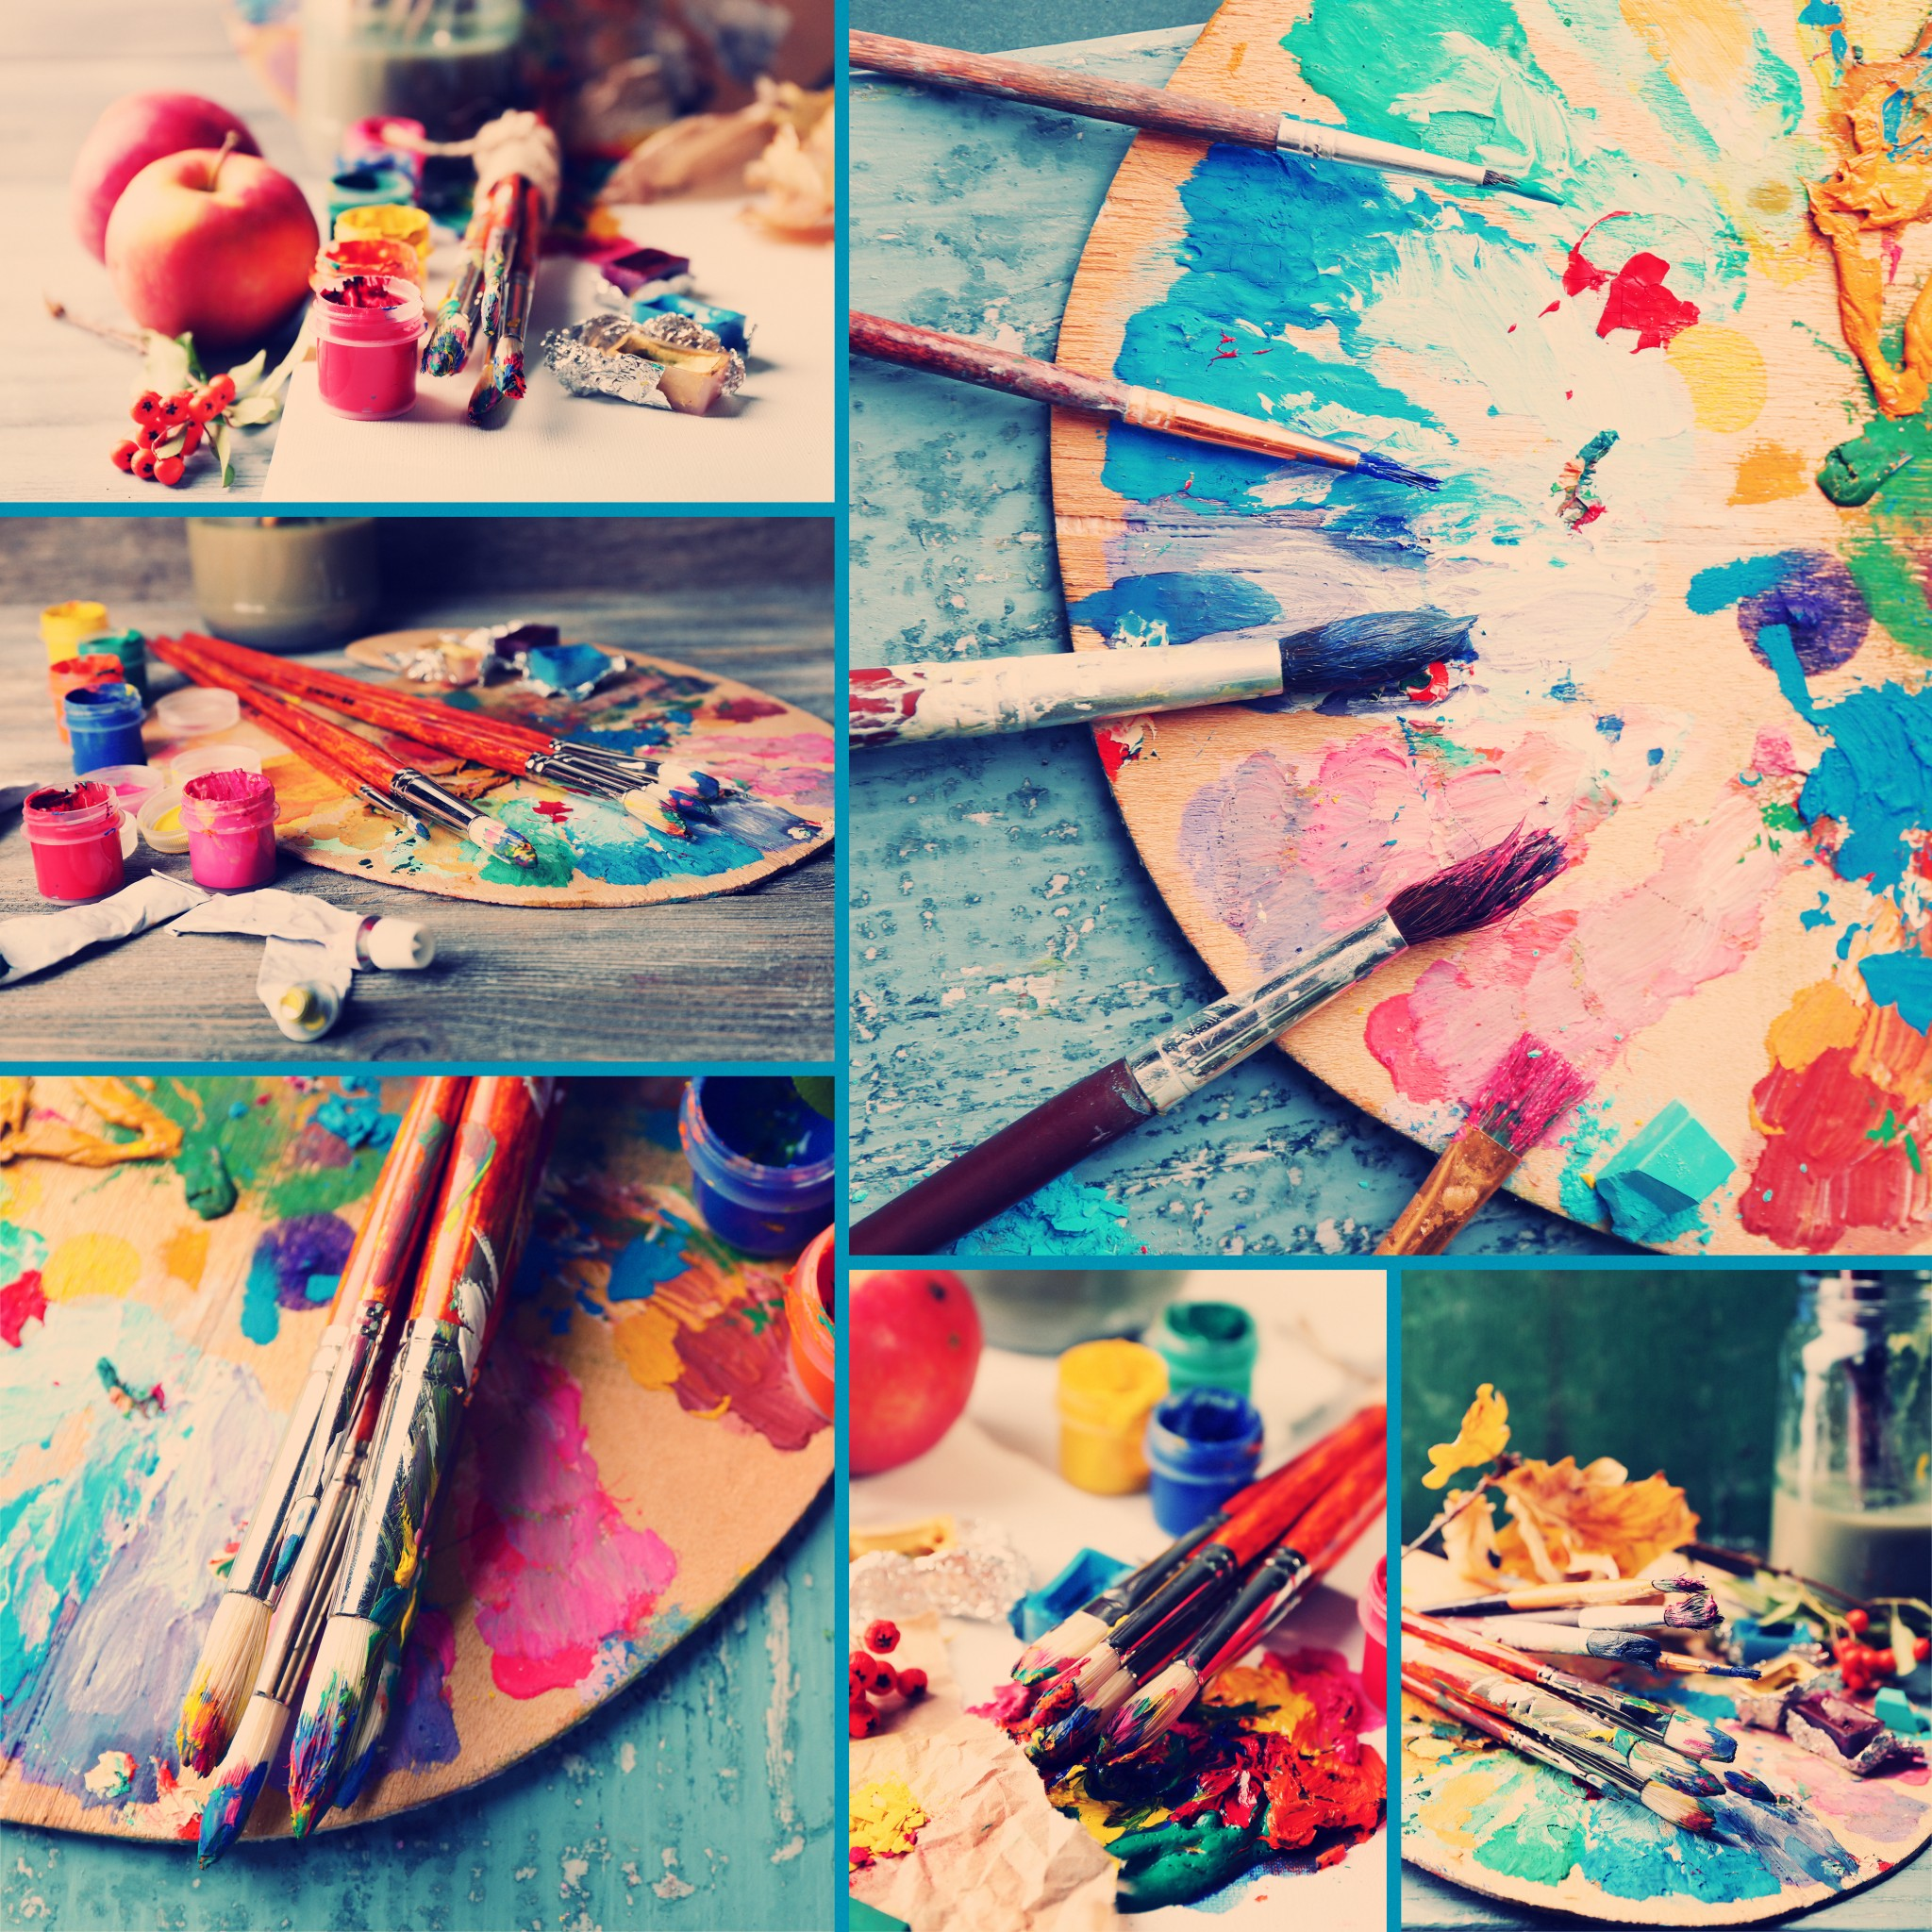 Art Therapy Is For Everyone